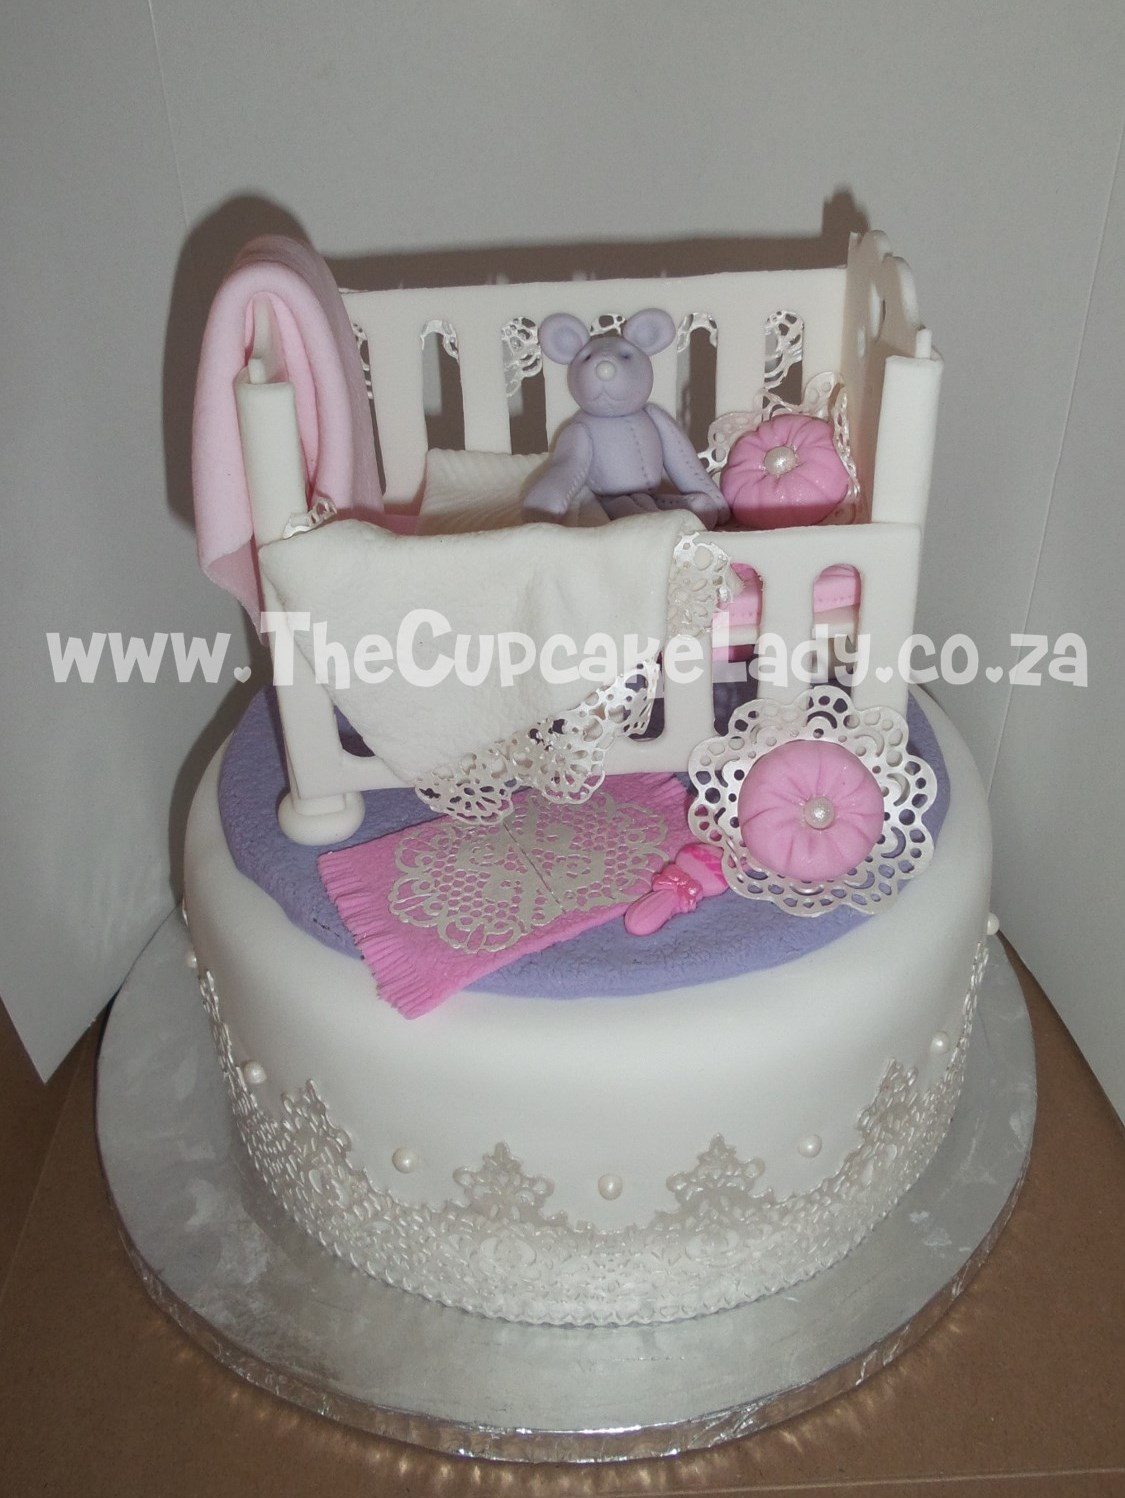 baby shower, nursery-theme, cake, carrot cake, cream cheese icing, , cot and all its extras - the lace, blankets, cushions and all - are hand made of sugar paste and completely edible